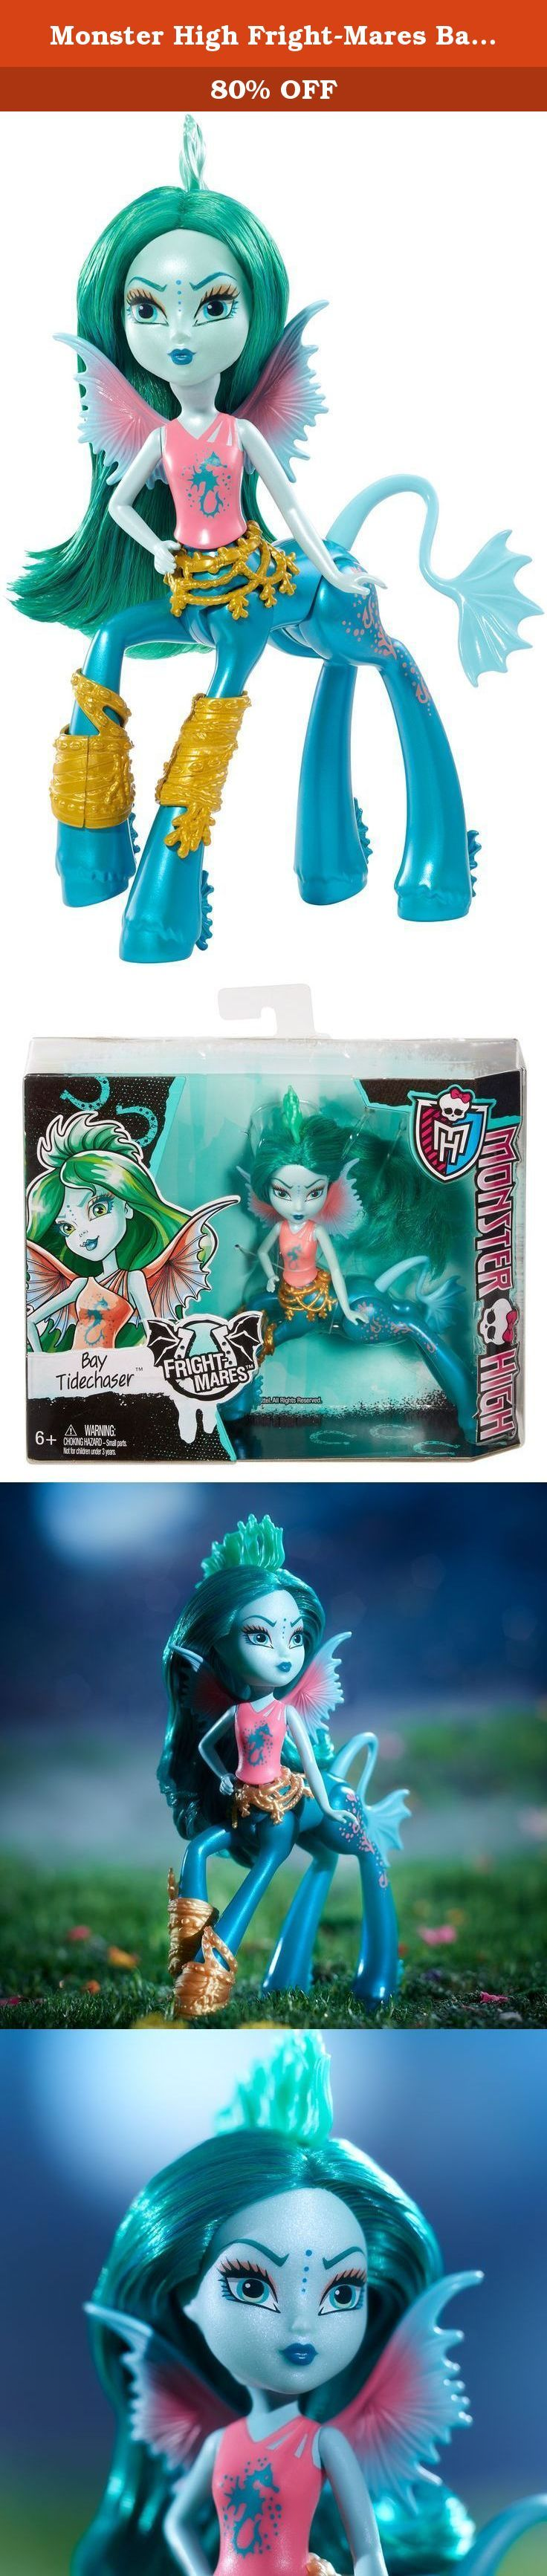 Monster High Fright-Mares Bay Tidechaser Doll. Monster High is monster huge with so many secret doors, passageways and portals, you never know what you might find within its halls -- or its walls! Deep within the catacombs of the iconic school live new beast friends for the Monster High ghouls. Half centaur-half unique monster, these monster mash-ups are real Fright-Mares! Meet characters like Pyxis Prepstockings, half Pegasus and half centaur; Frets Quartzmane, part gargoyle, part…